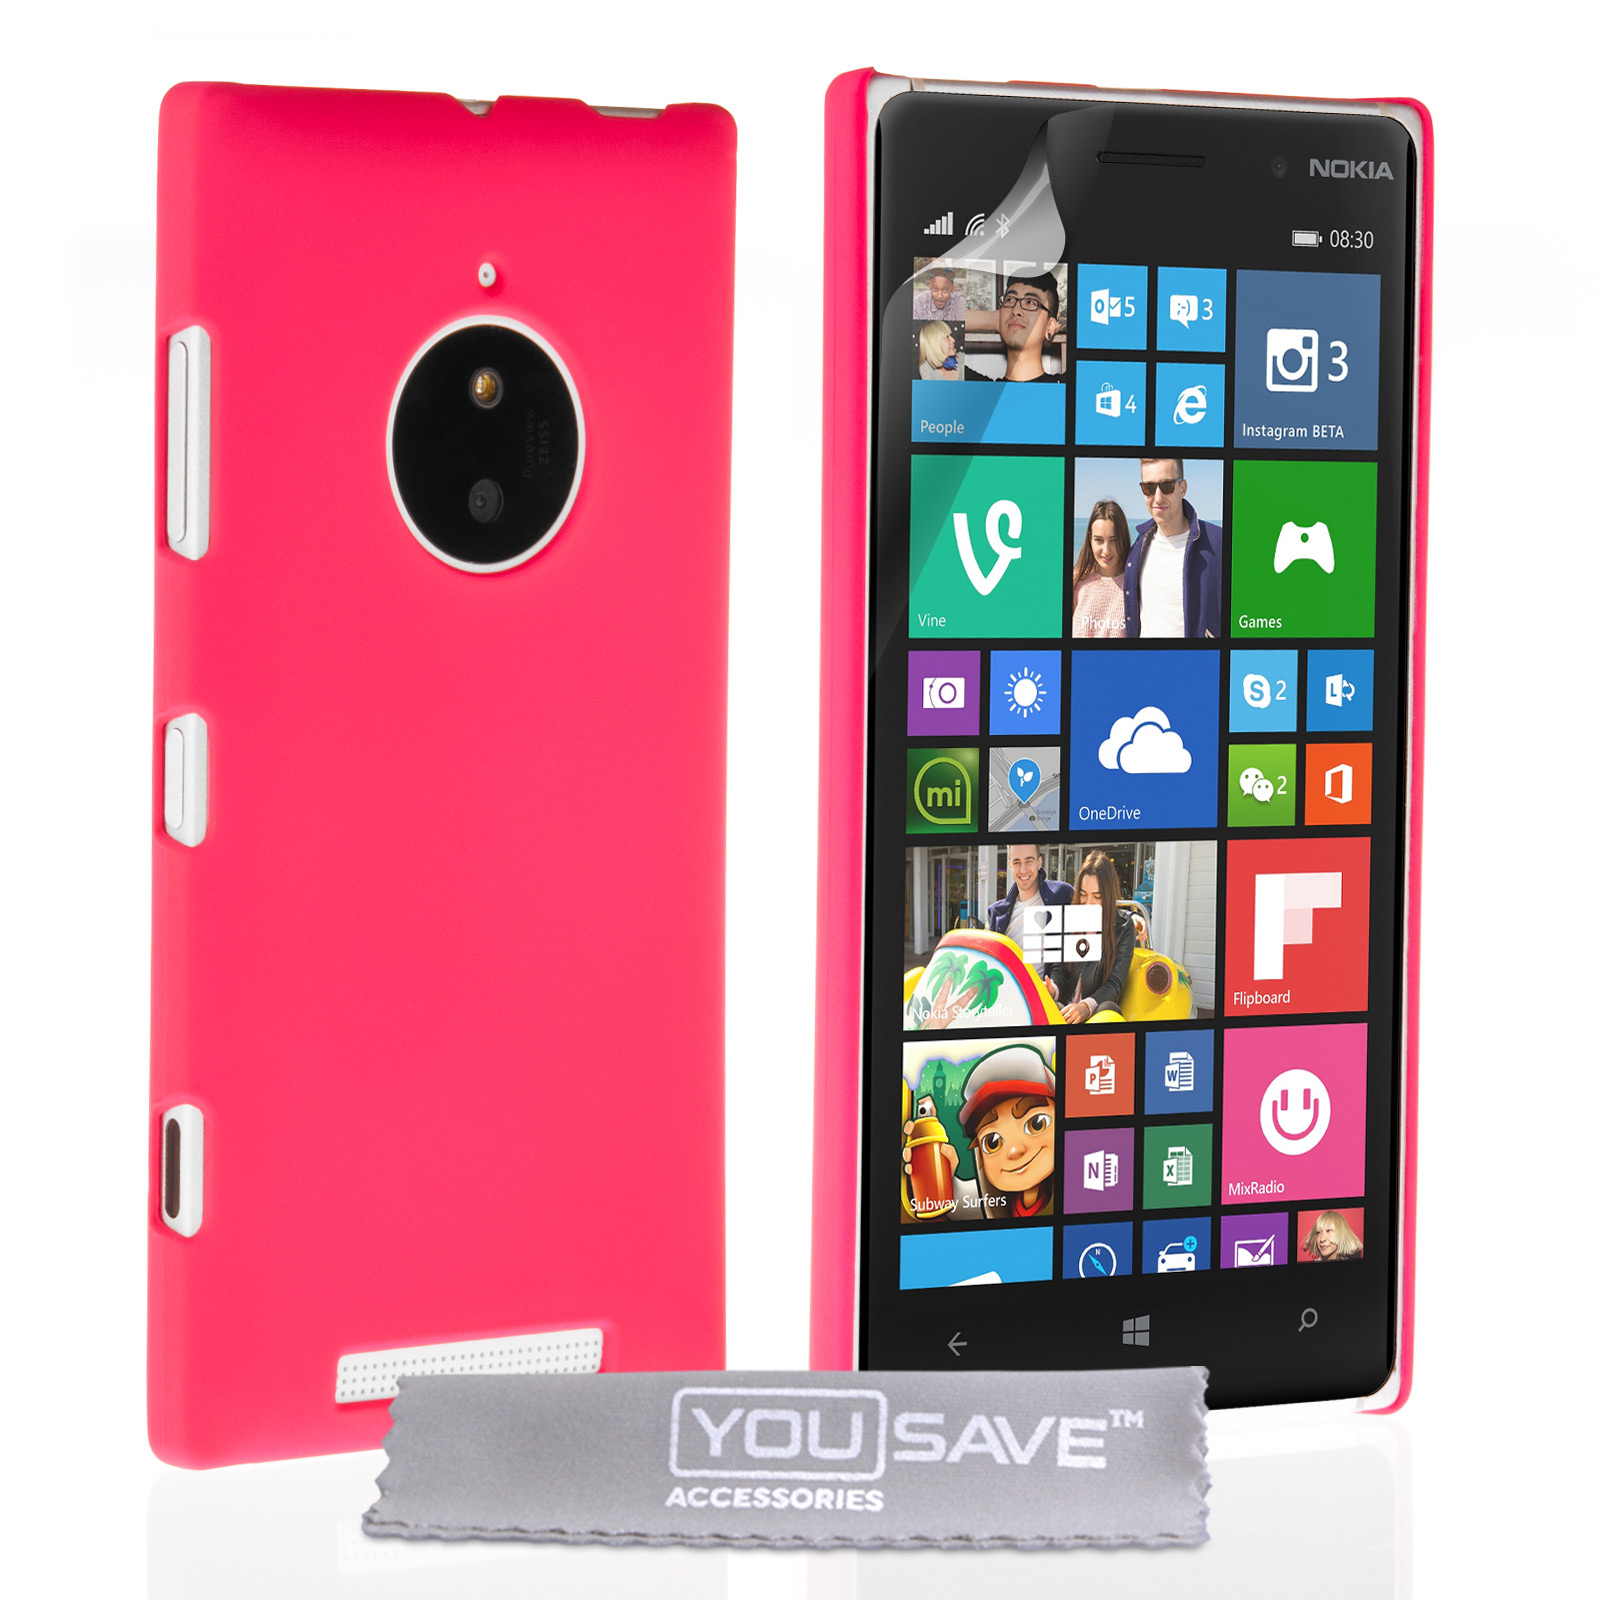 hot sale online 41a65 6a3cf Yousave Accessories Nokia Lumia 830 Hard Hybrid Case - Hot Pink